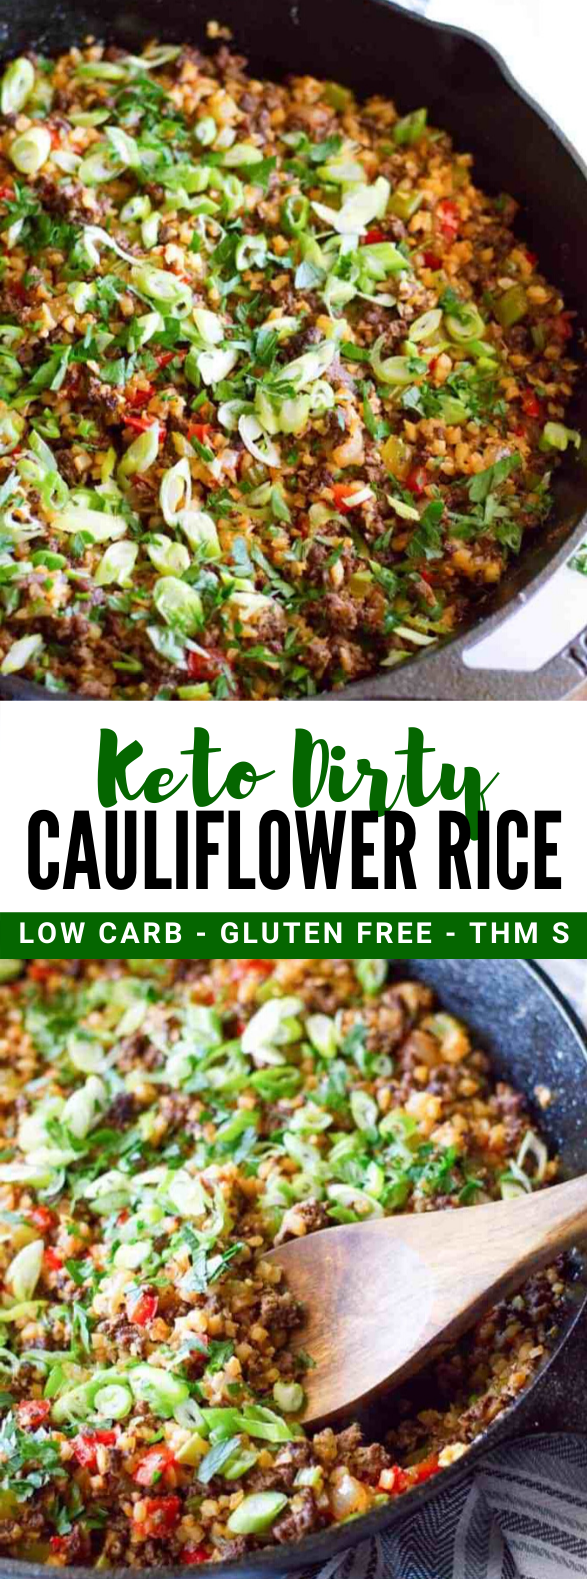 Dirty Cauliflower Rice Recipe with Ground Meat #healthy #ketodiet